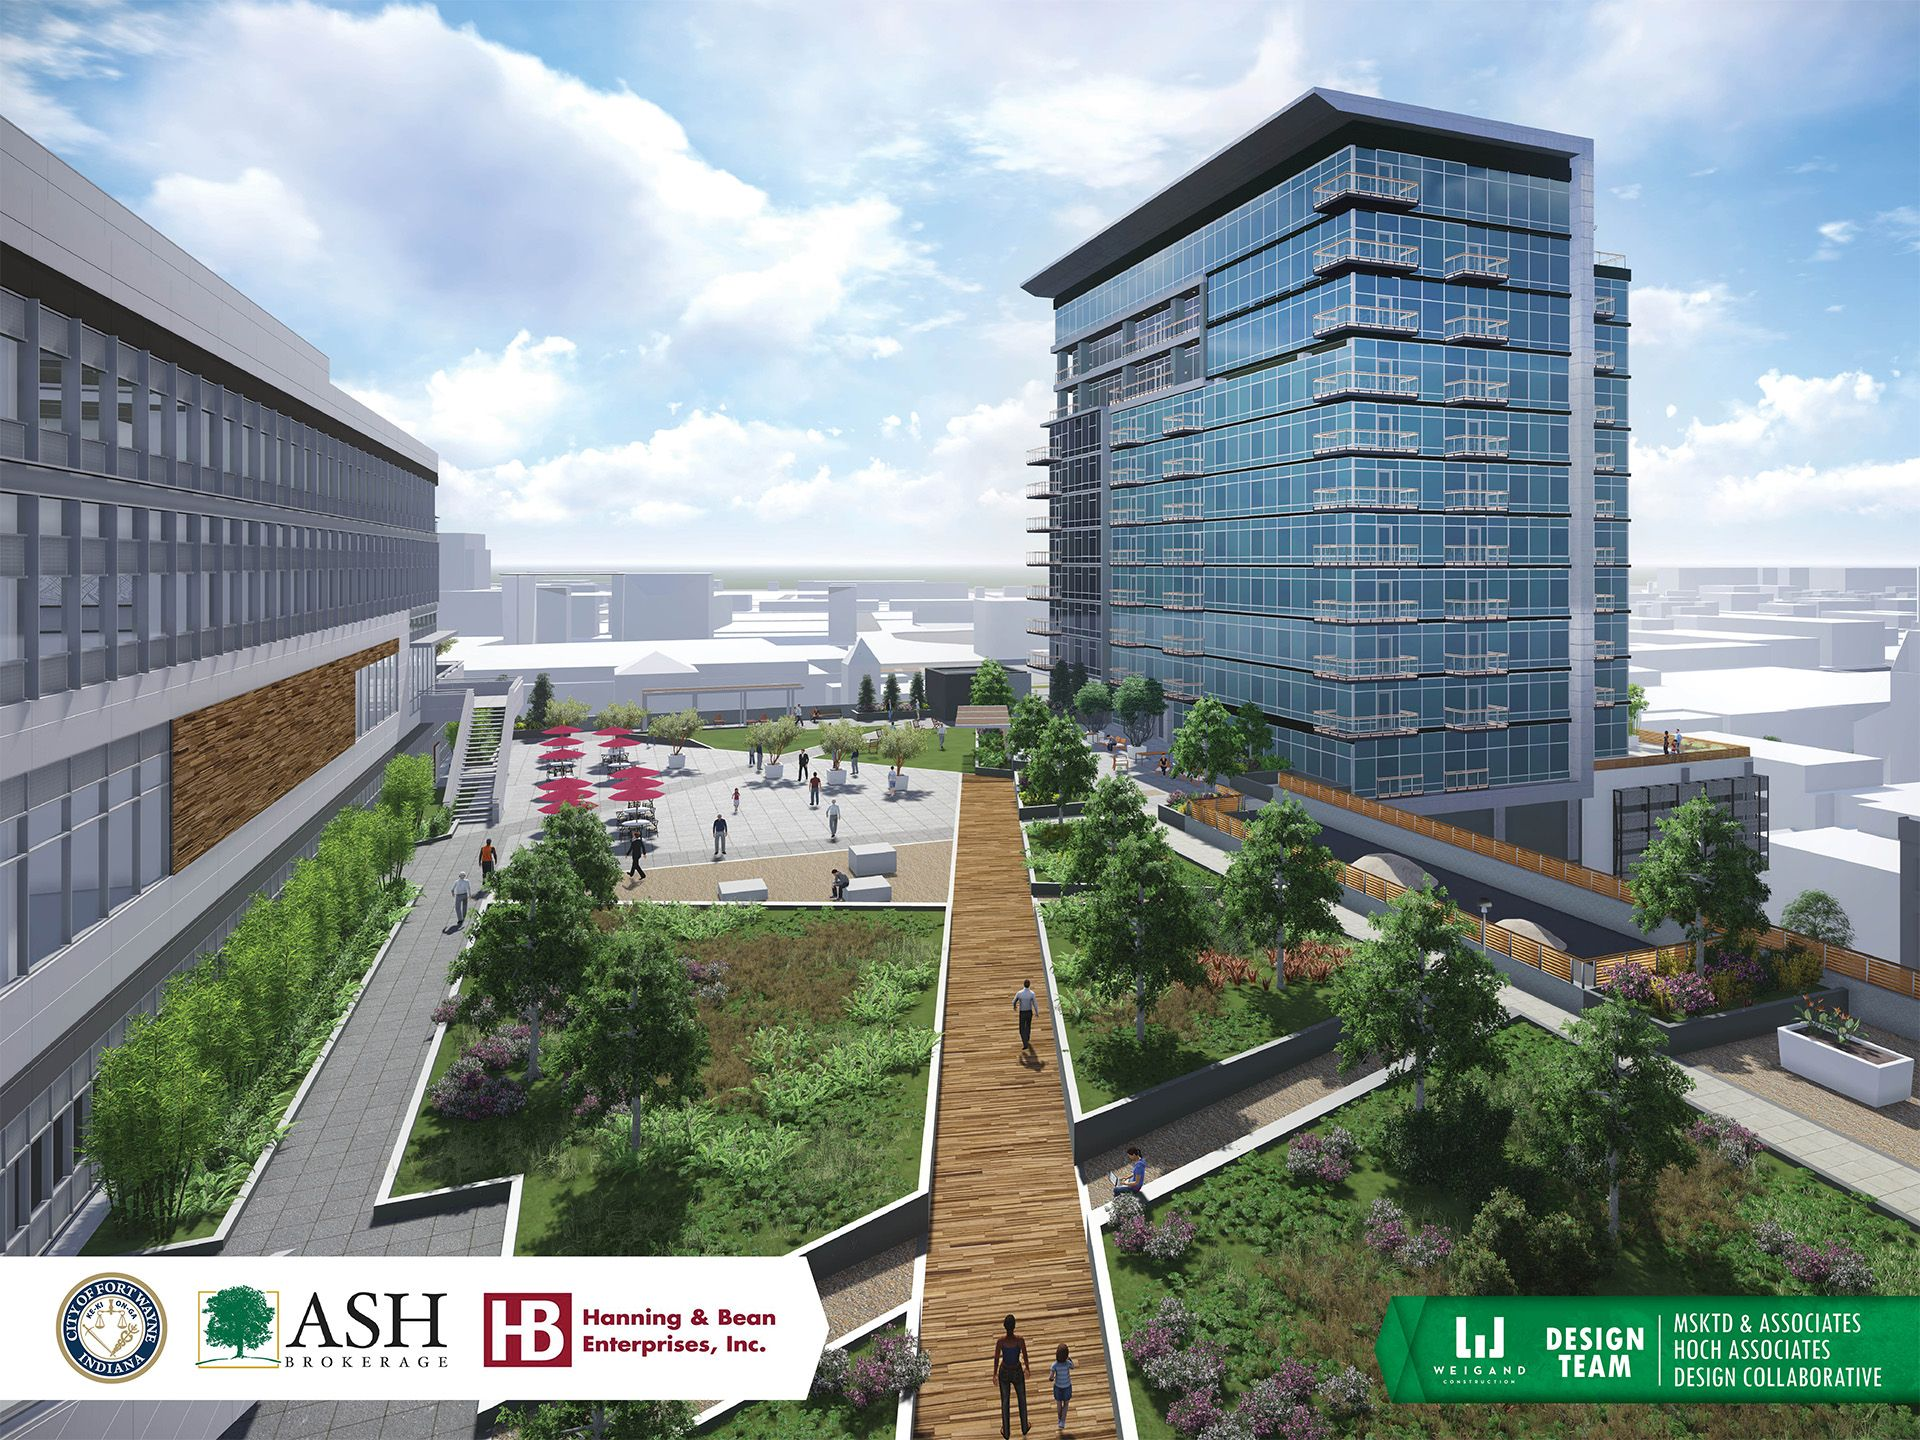 The Ash Brokerage Project Known As 39 Emerald Skyline 39 Is Expanding